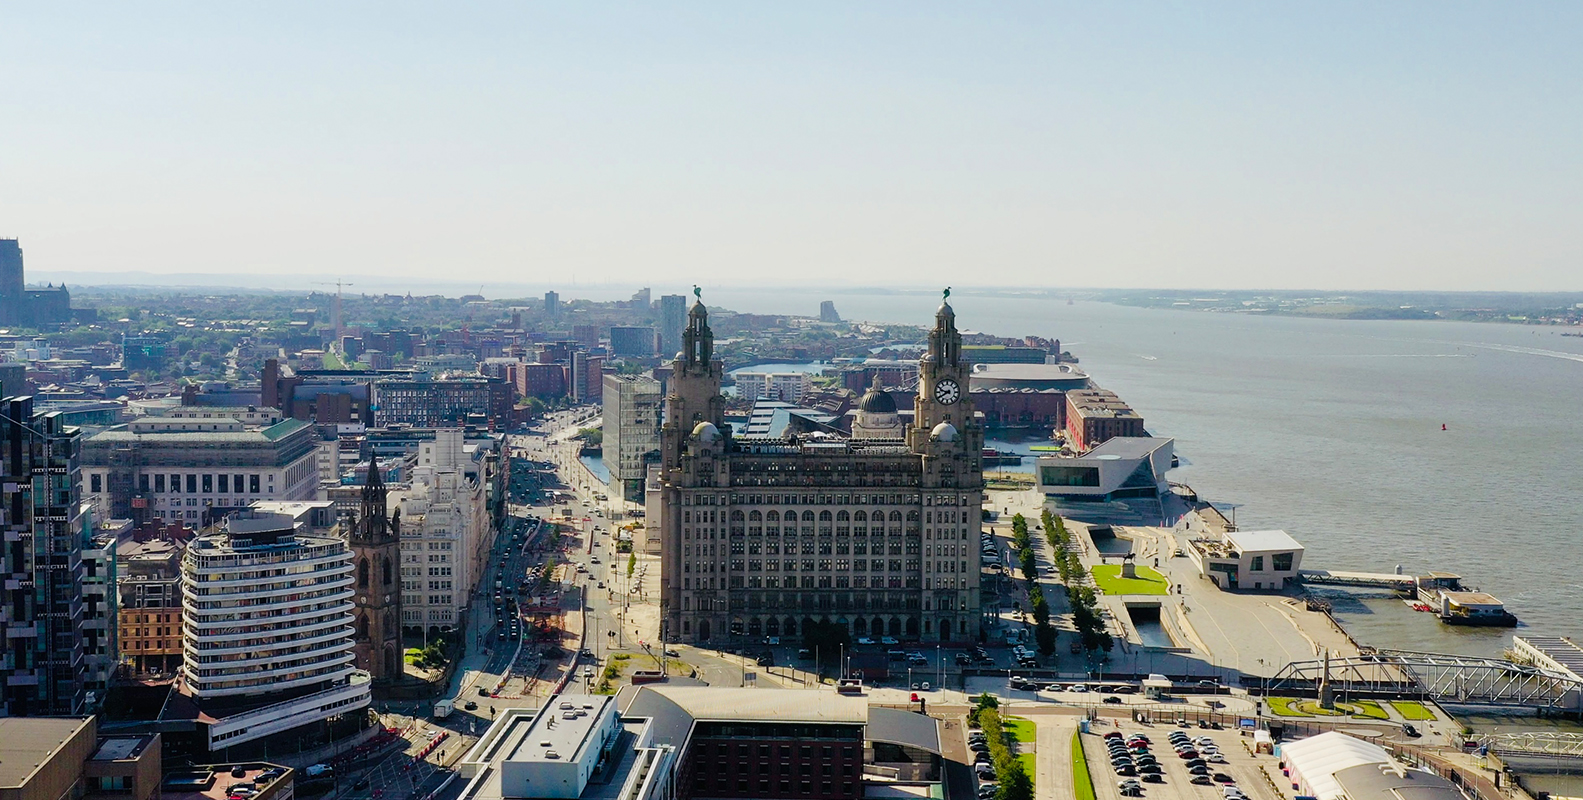 View of the Liver Building in Liverpool on the waterfront